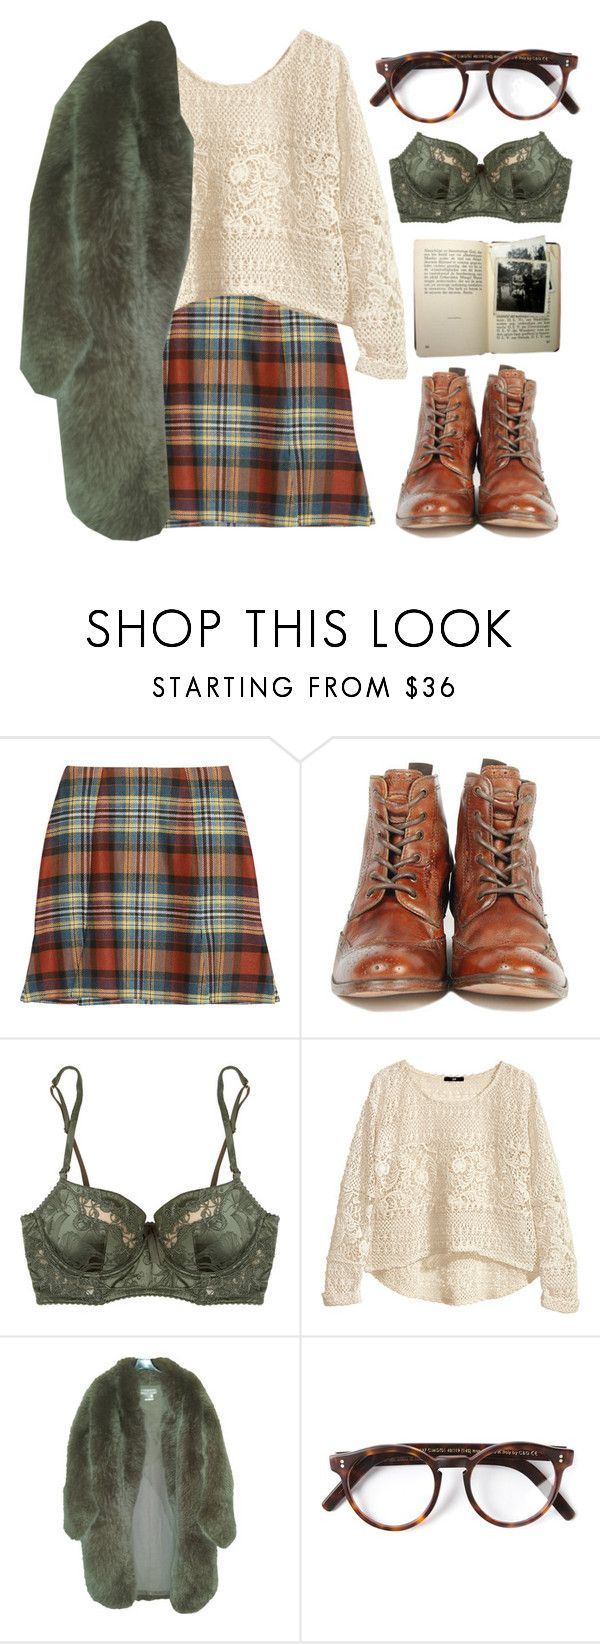 """""""Без названия #195"""" by red-moon-98 ❤ liked on Polyvore featuring Vivienne Westwood Anglomania, H by Hudson, Elle Macpherson Intimates, H&M, Paul & Joe, Cutler and Gross, women's clothing, women's fashion, women and female"""